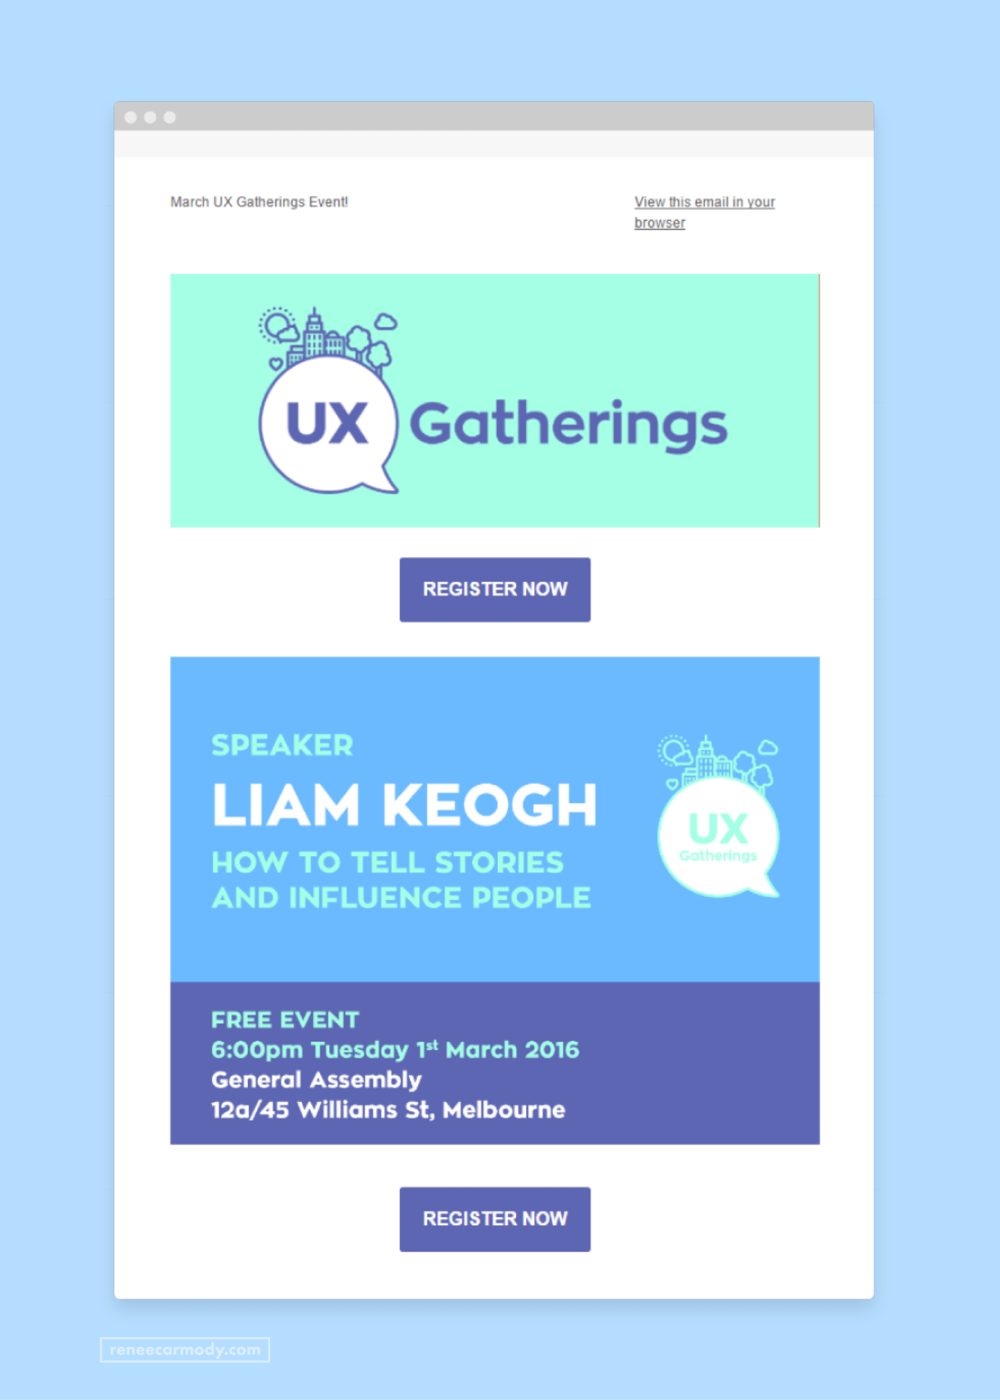 Brand and email newsletter template design for UX Gatherings by Renée Carmody Design.